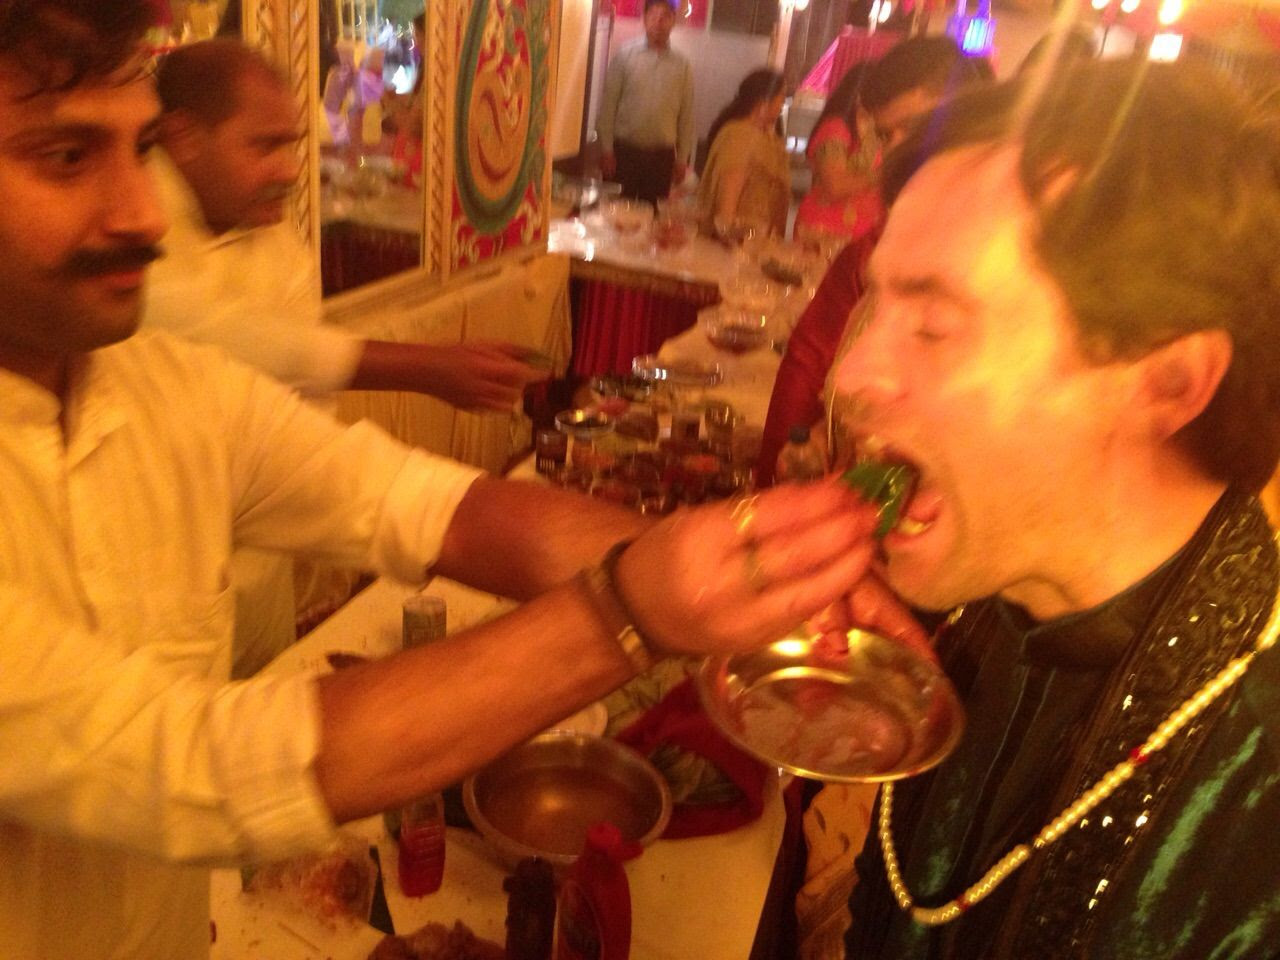 Fede Trying Paan in Dellhi photo 2015-05-16 17.38.01_zpsbpqrgykf.jpg